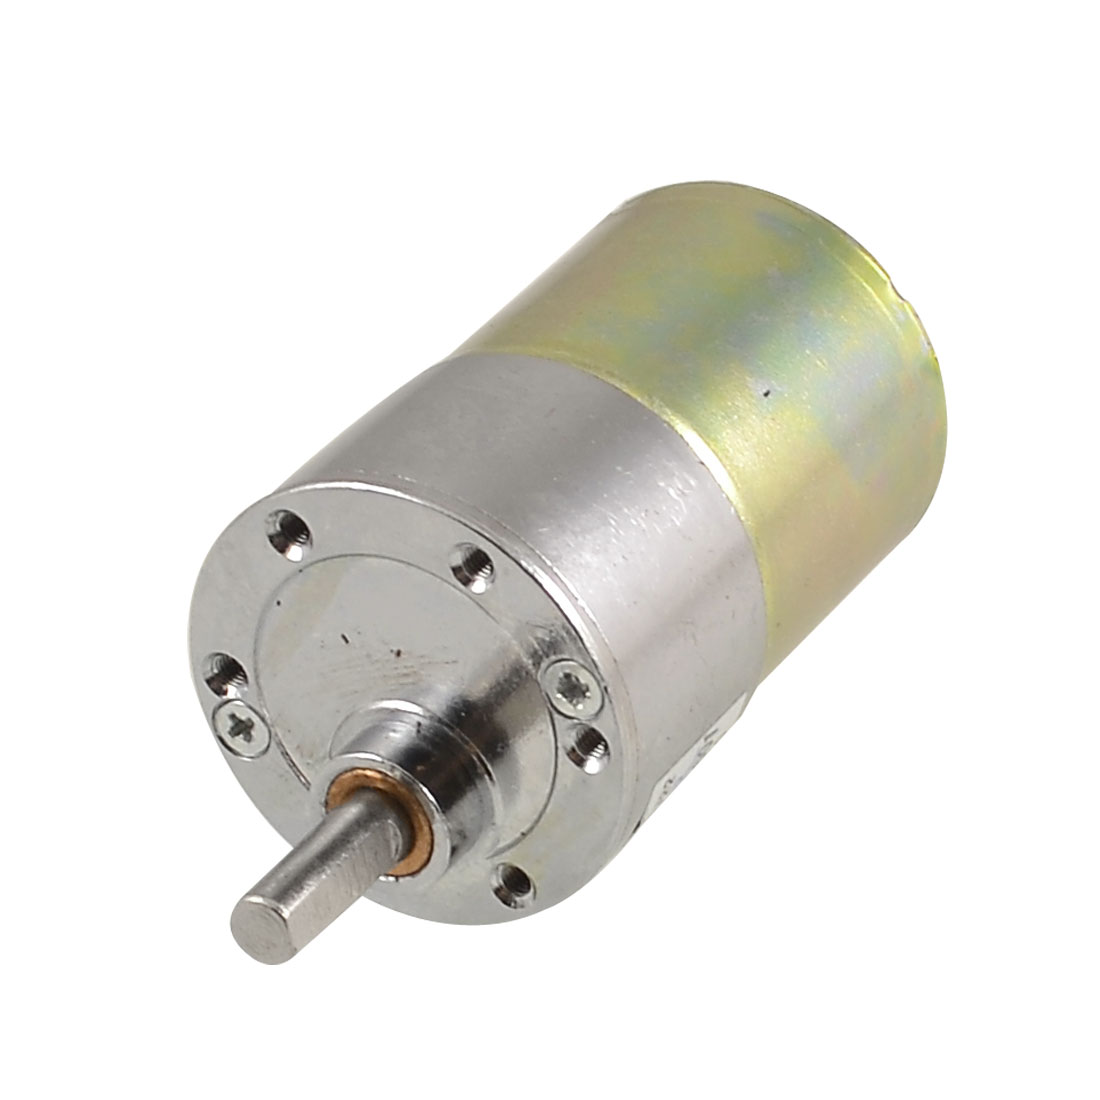 DC 12V 250 RPM 37mm Dia Permanent Magnetic Planet Gear Box Motor